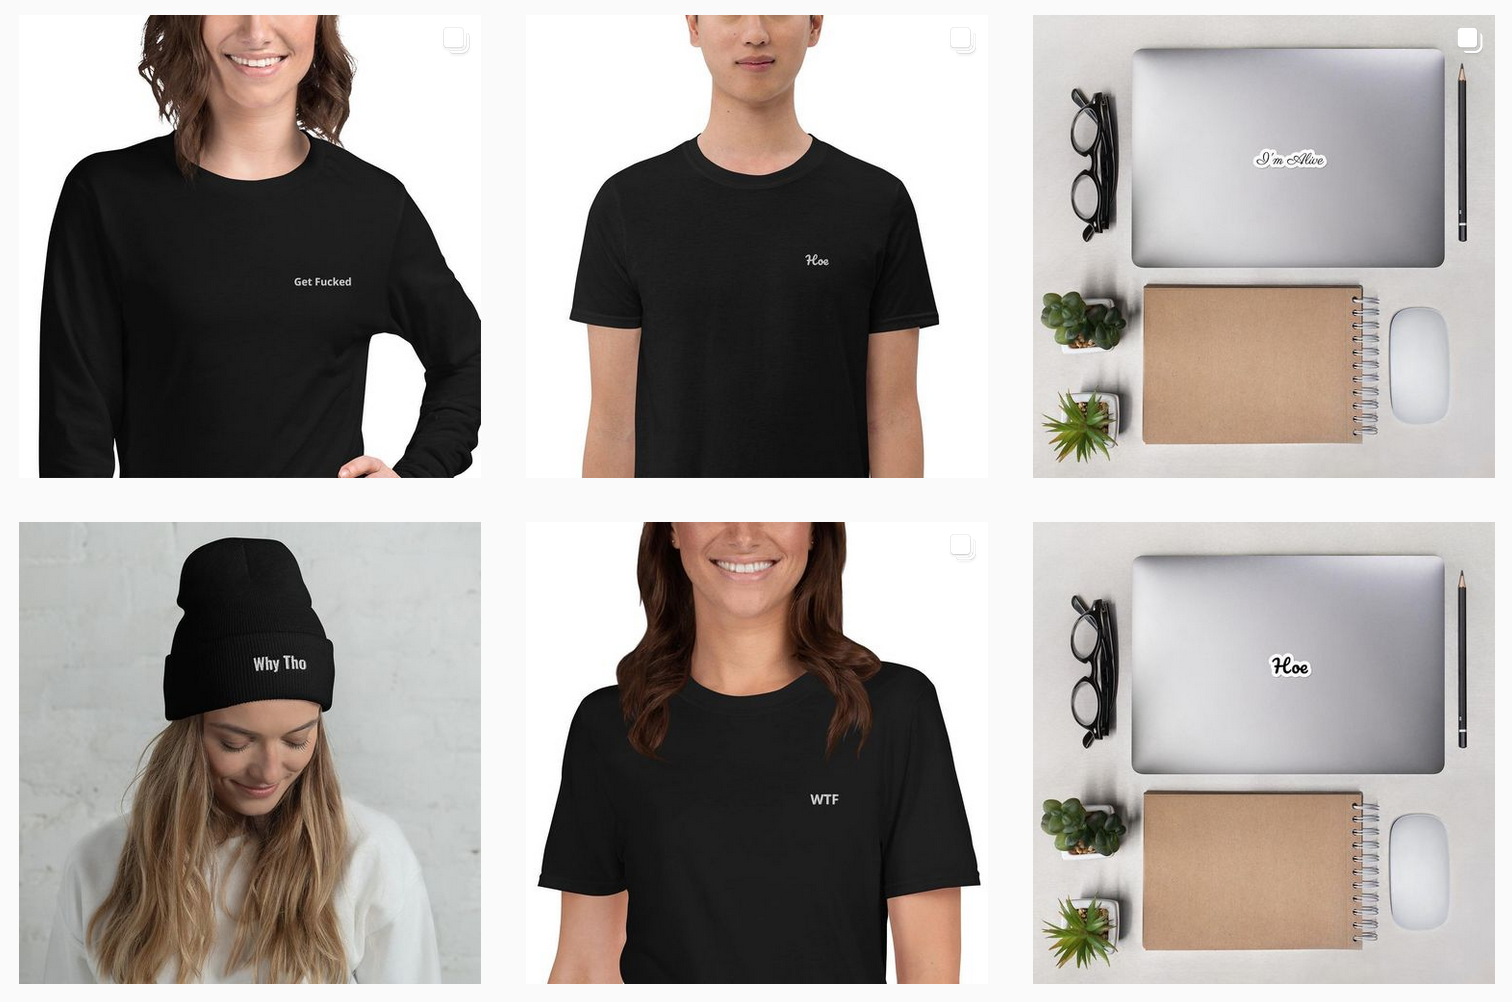 Oopsie Daisy | Product Image Gallery | Fashion Brands Featured on Afluencer